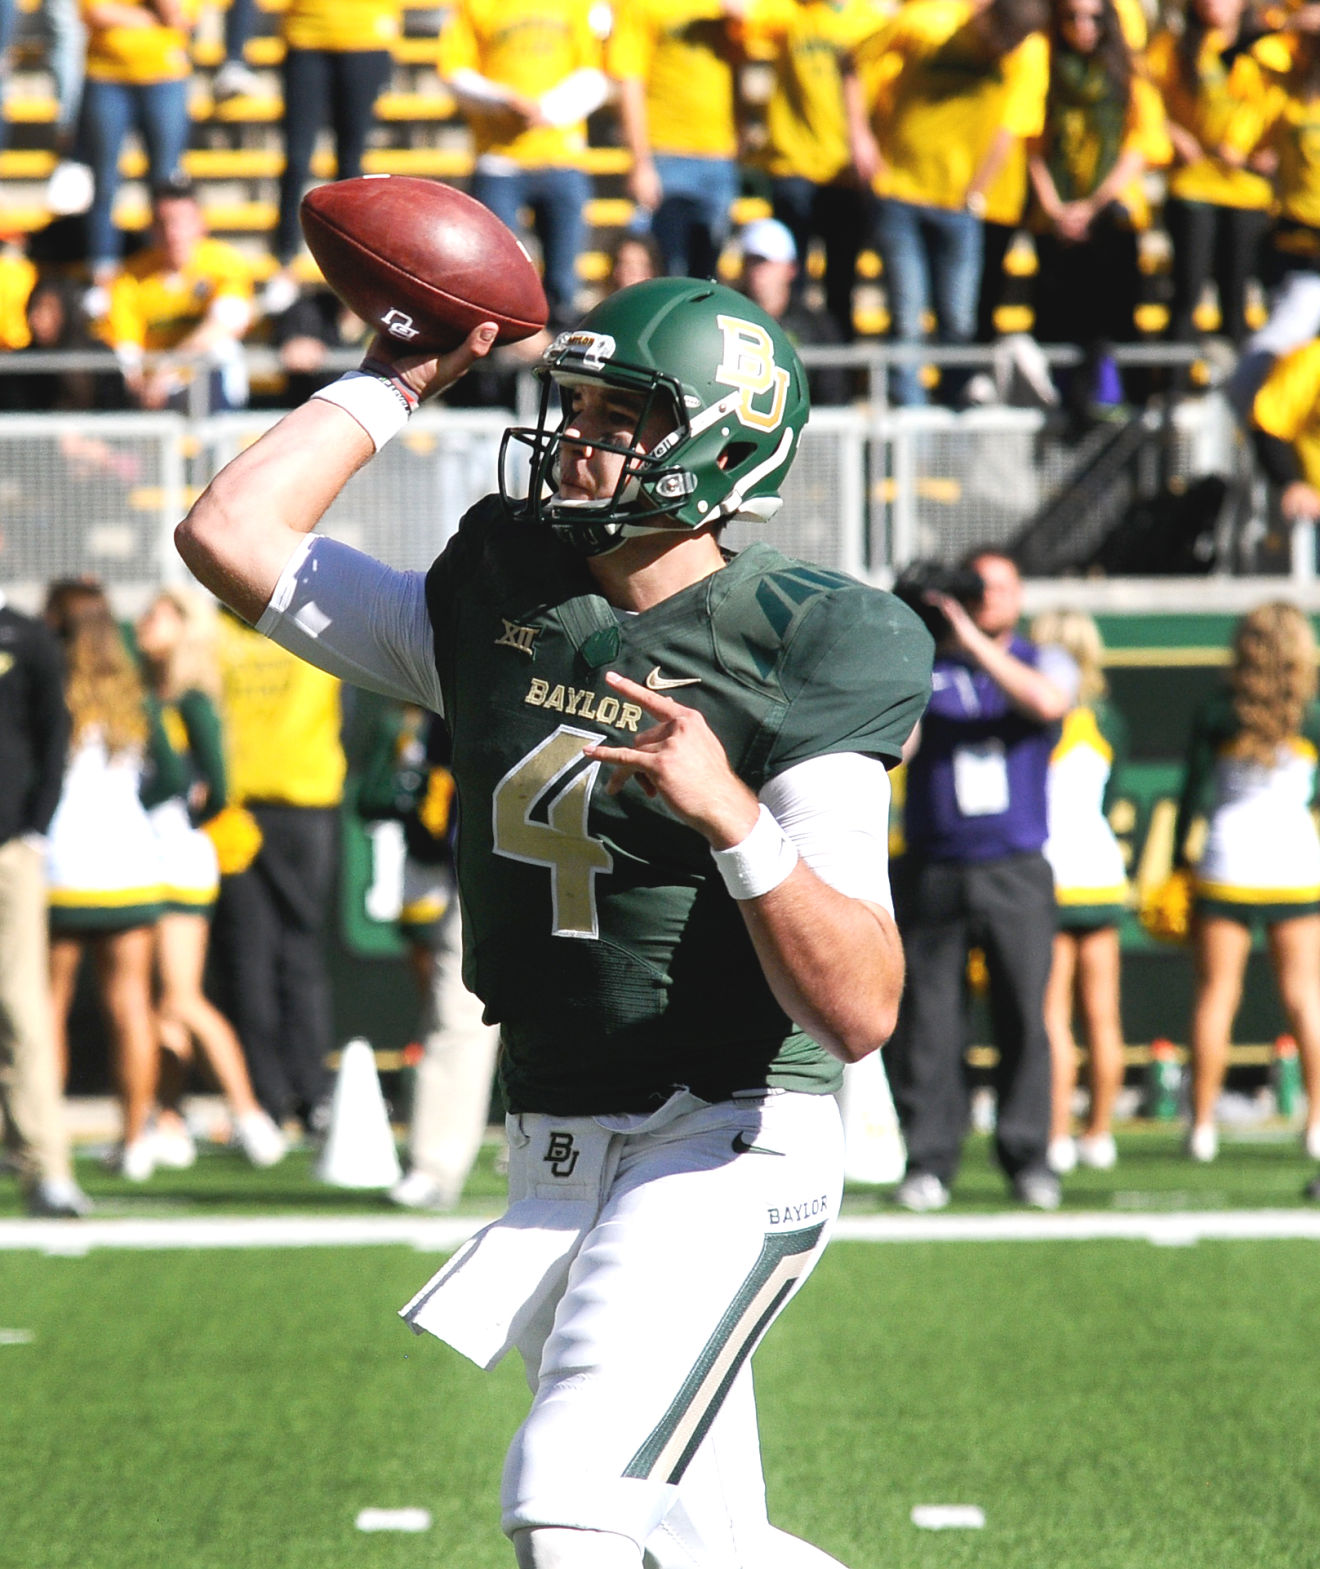 Baylor making quarterback change before facing Duke